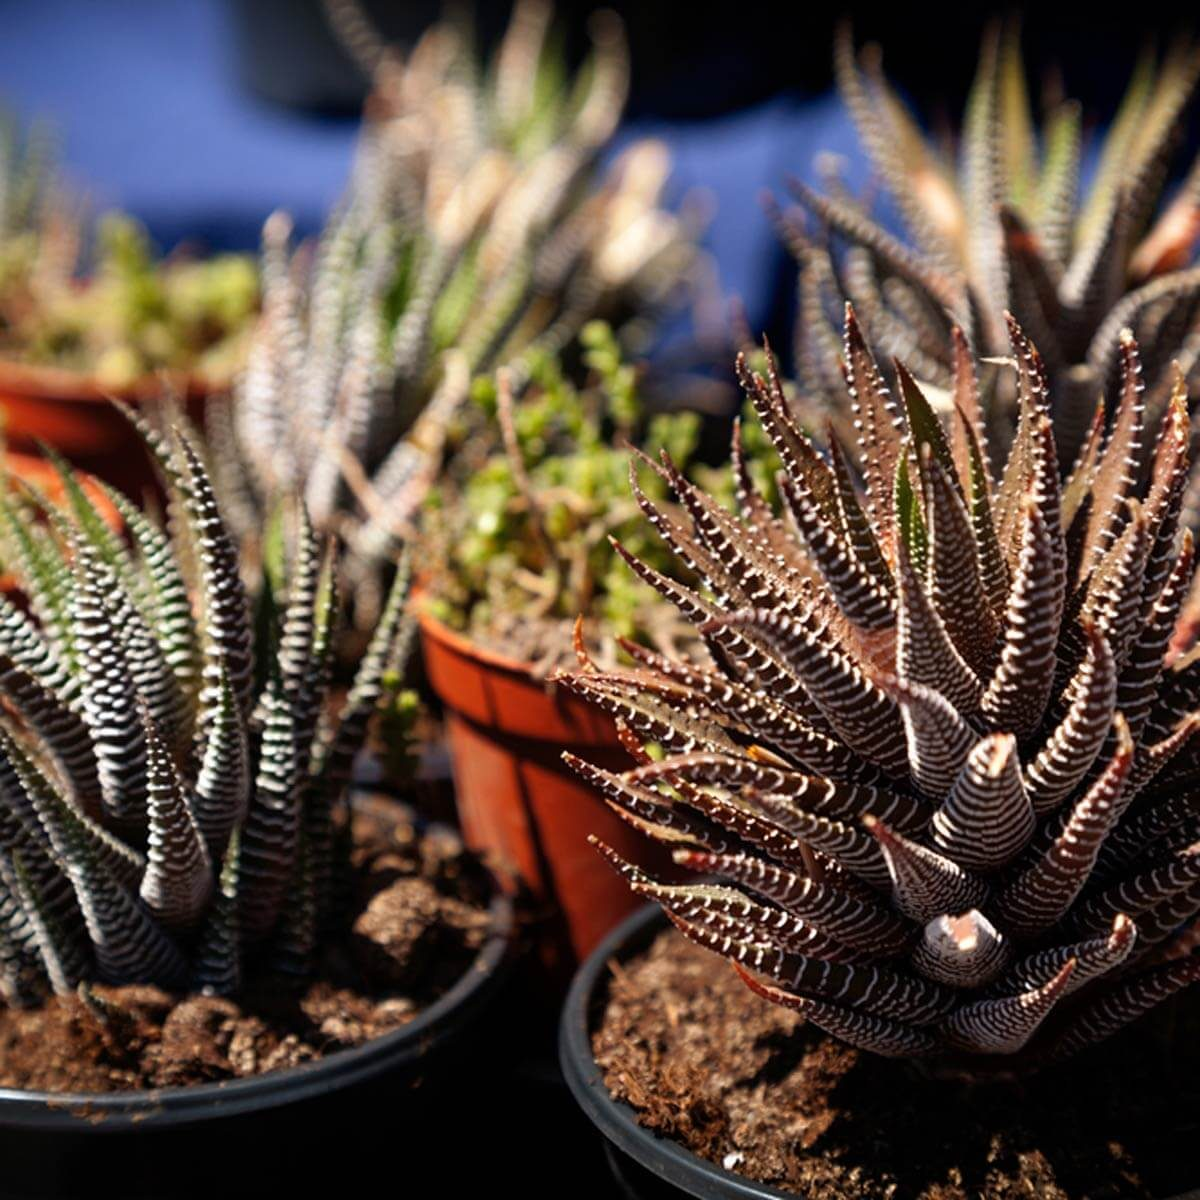 Move Plants Away From Windows on Freezing Nights